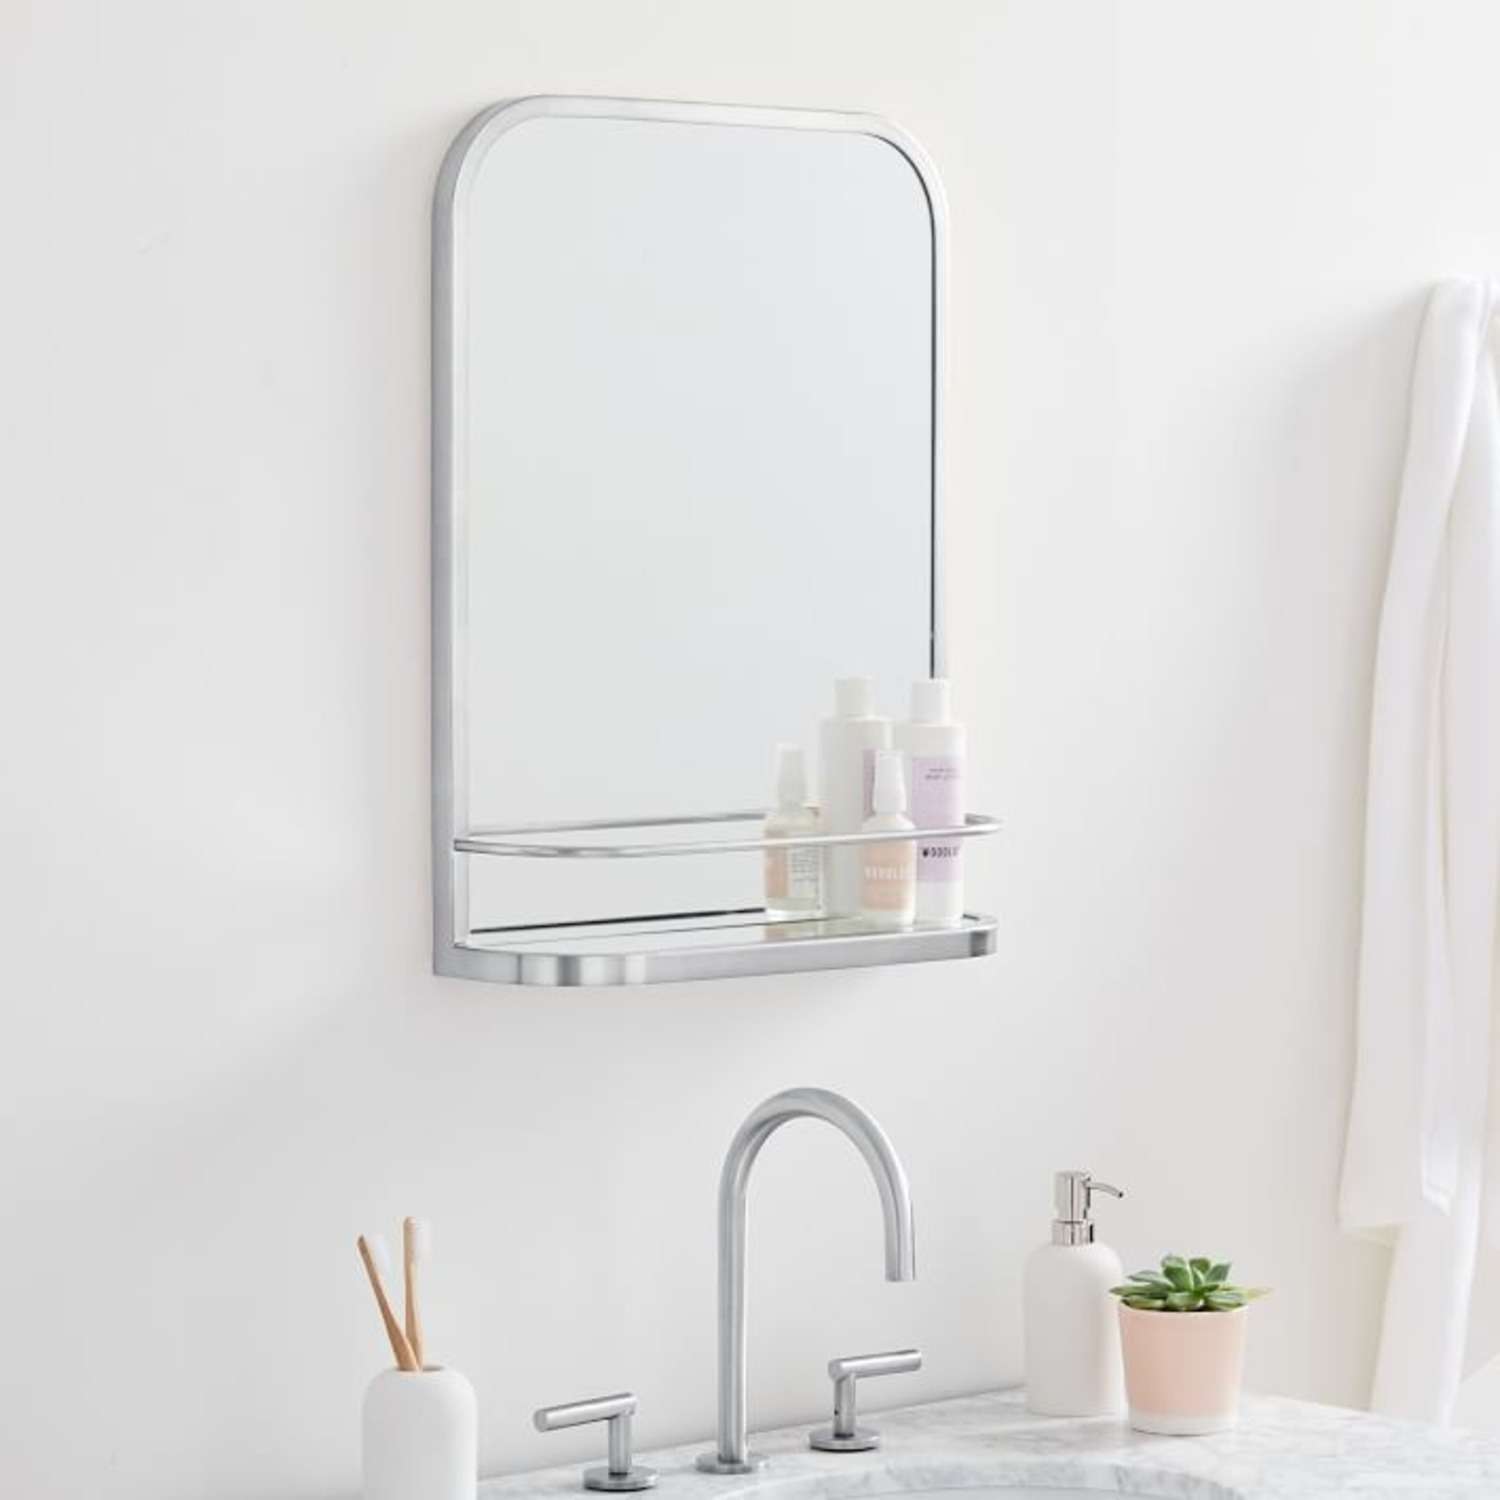 West Elm Seamless Mirror with Shelf, Chrome - image-1